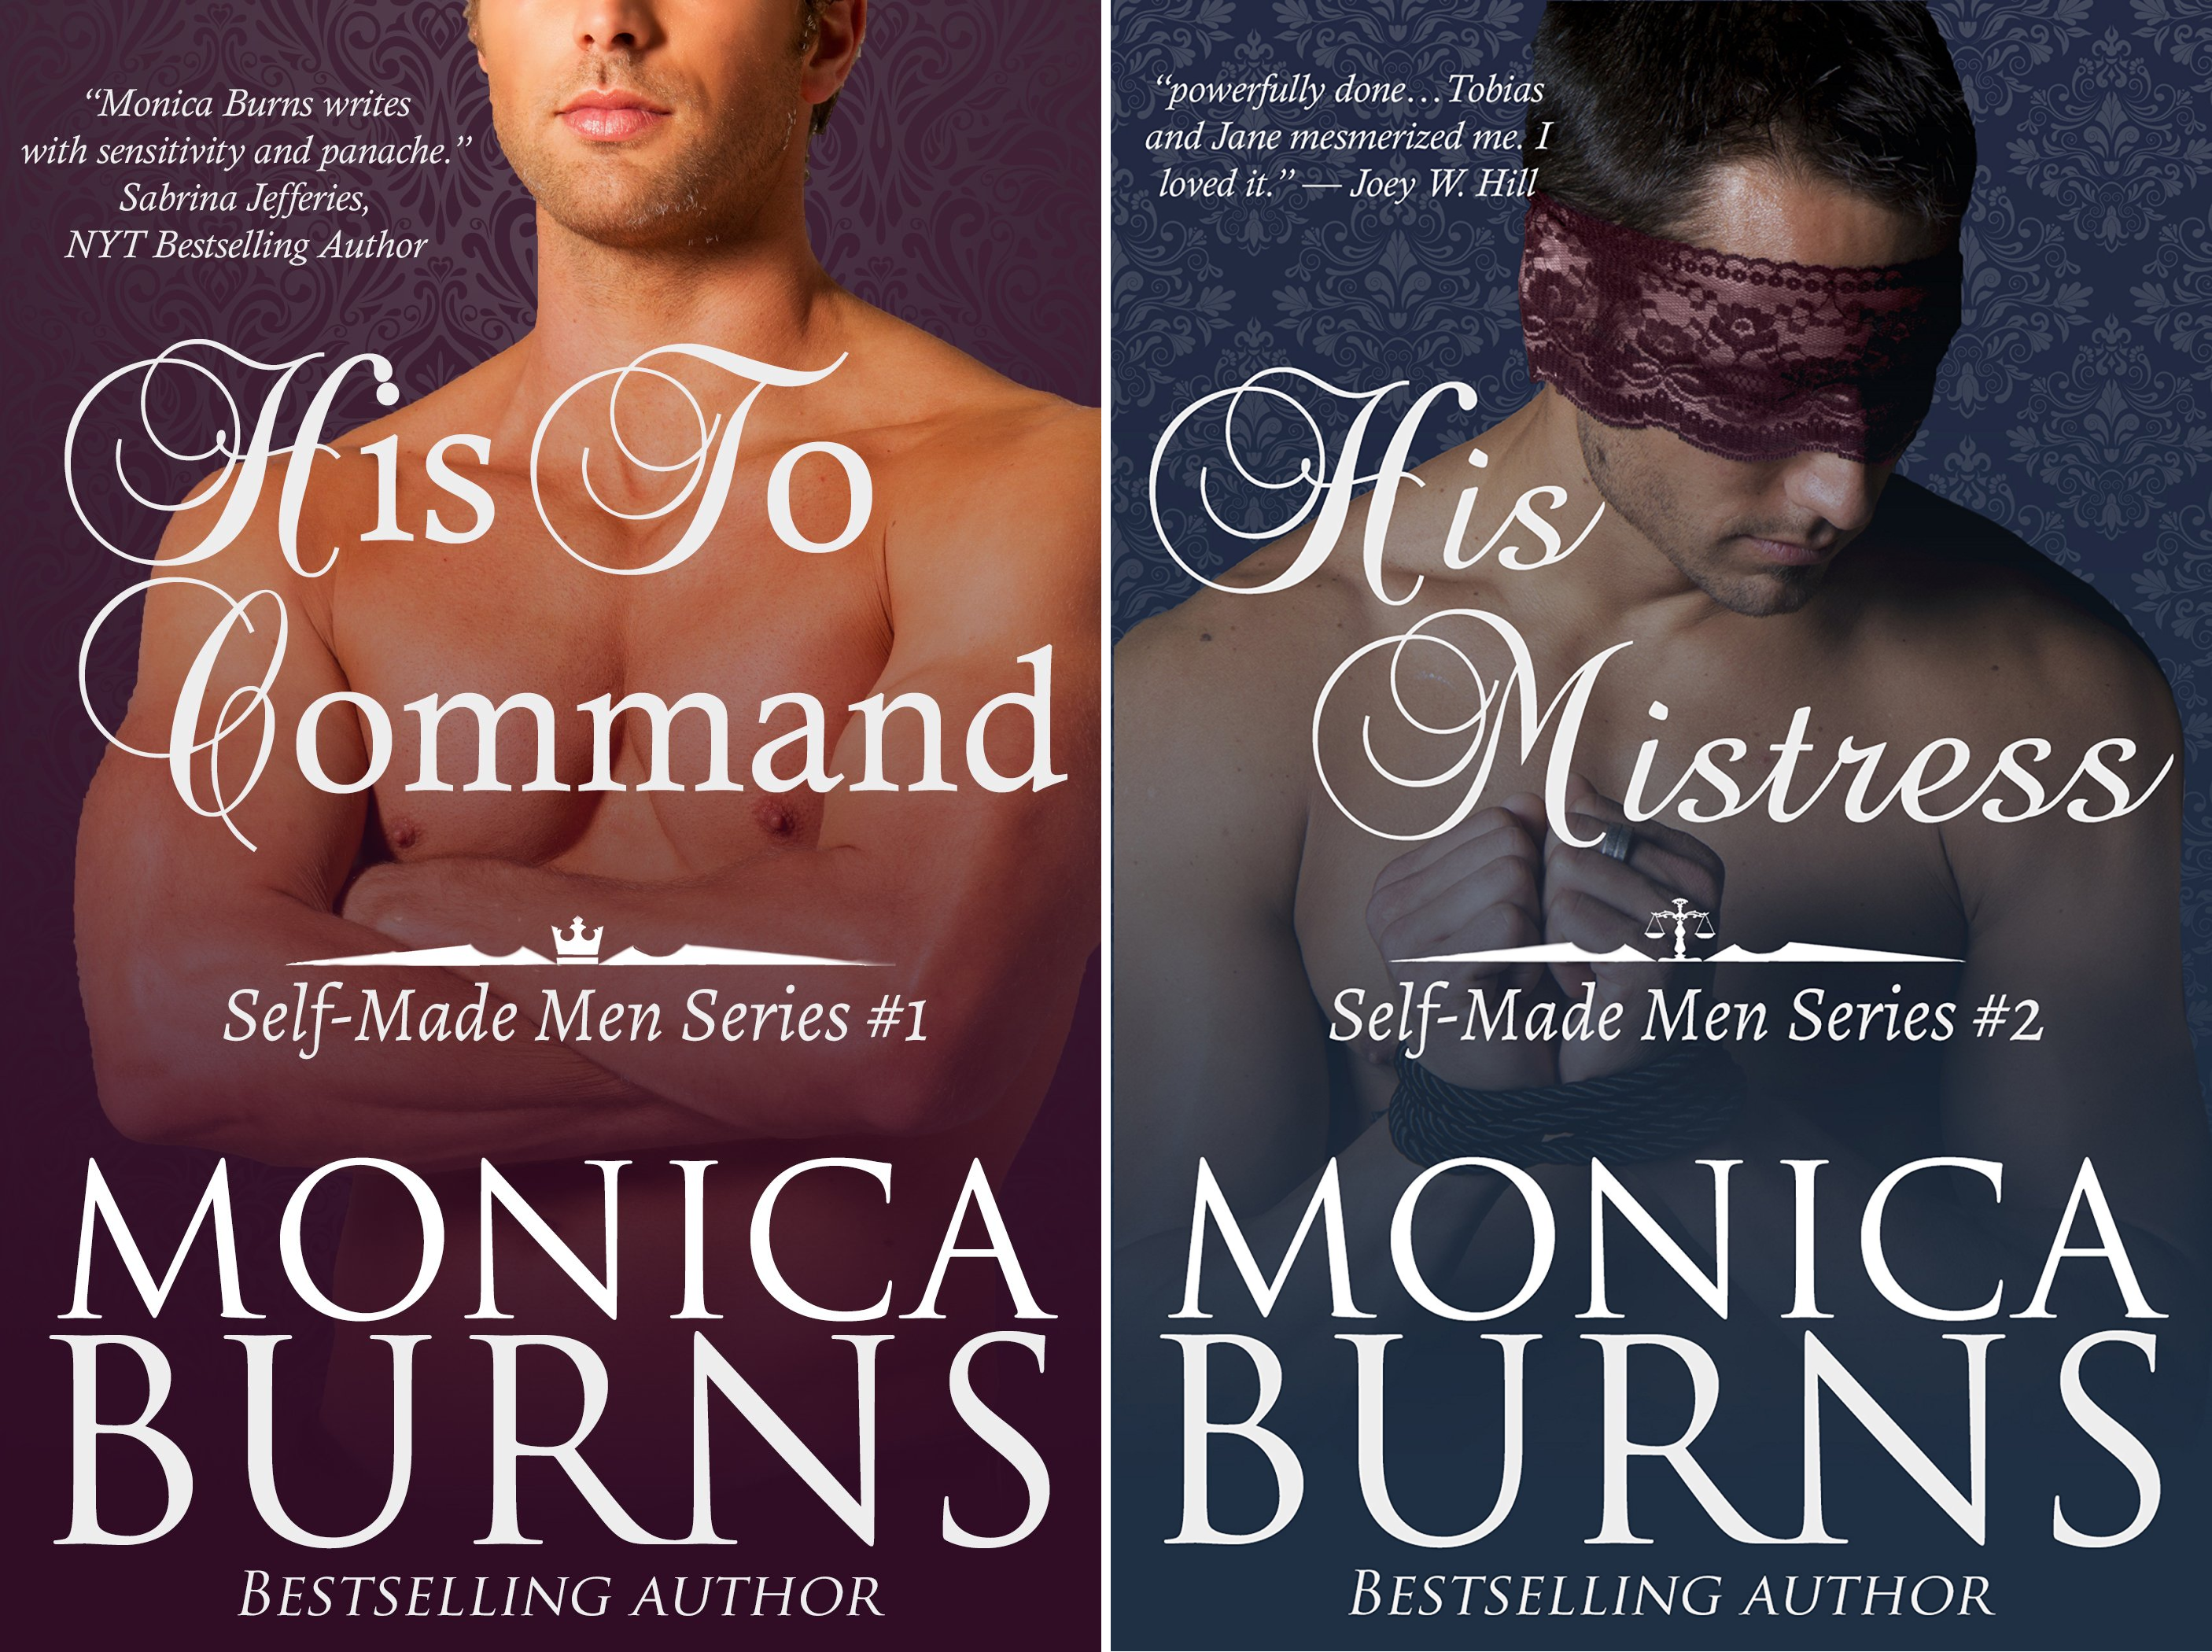 Self-Made Men Series (2 Book Series)